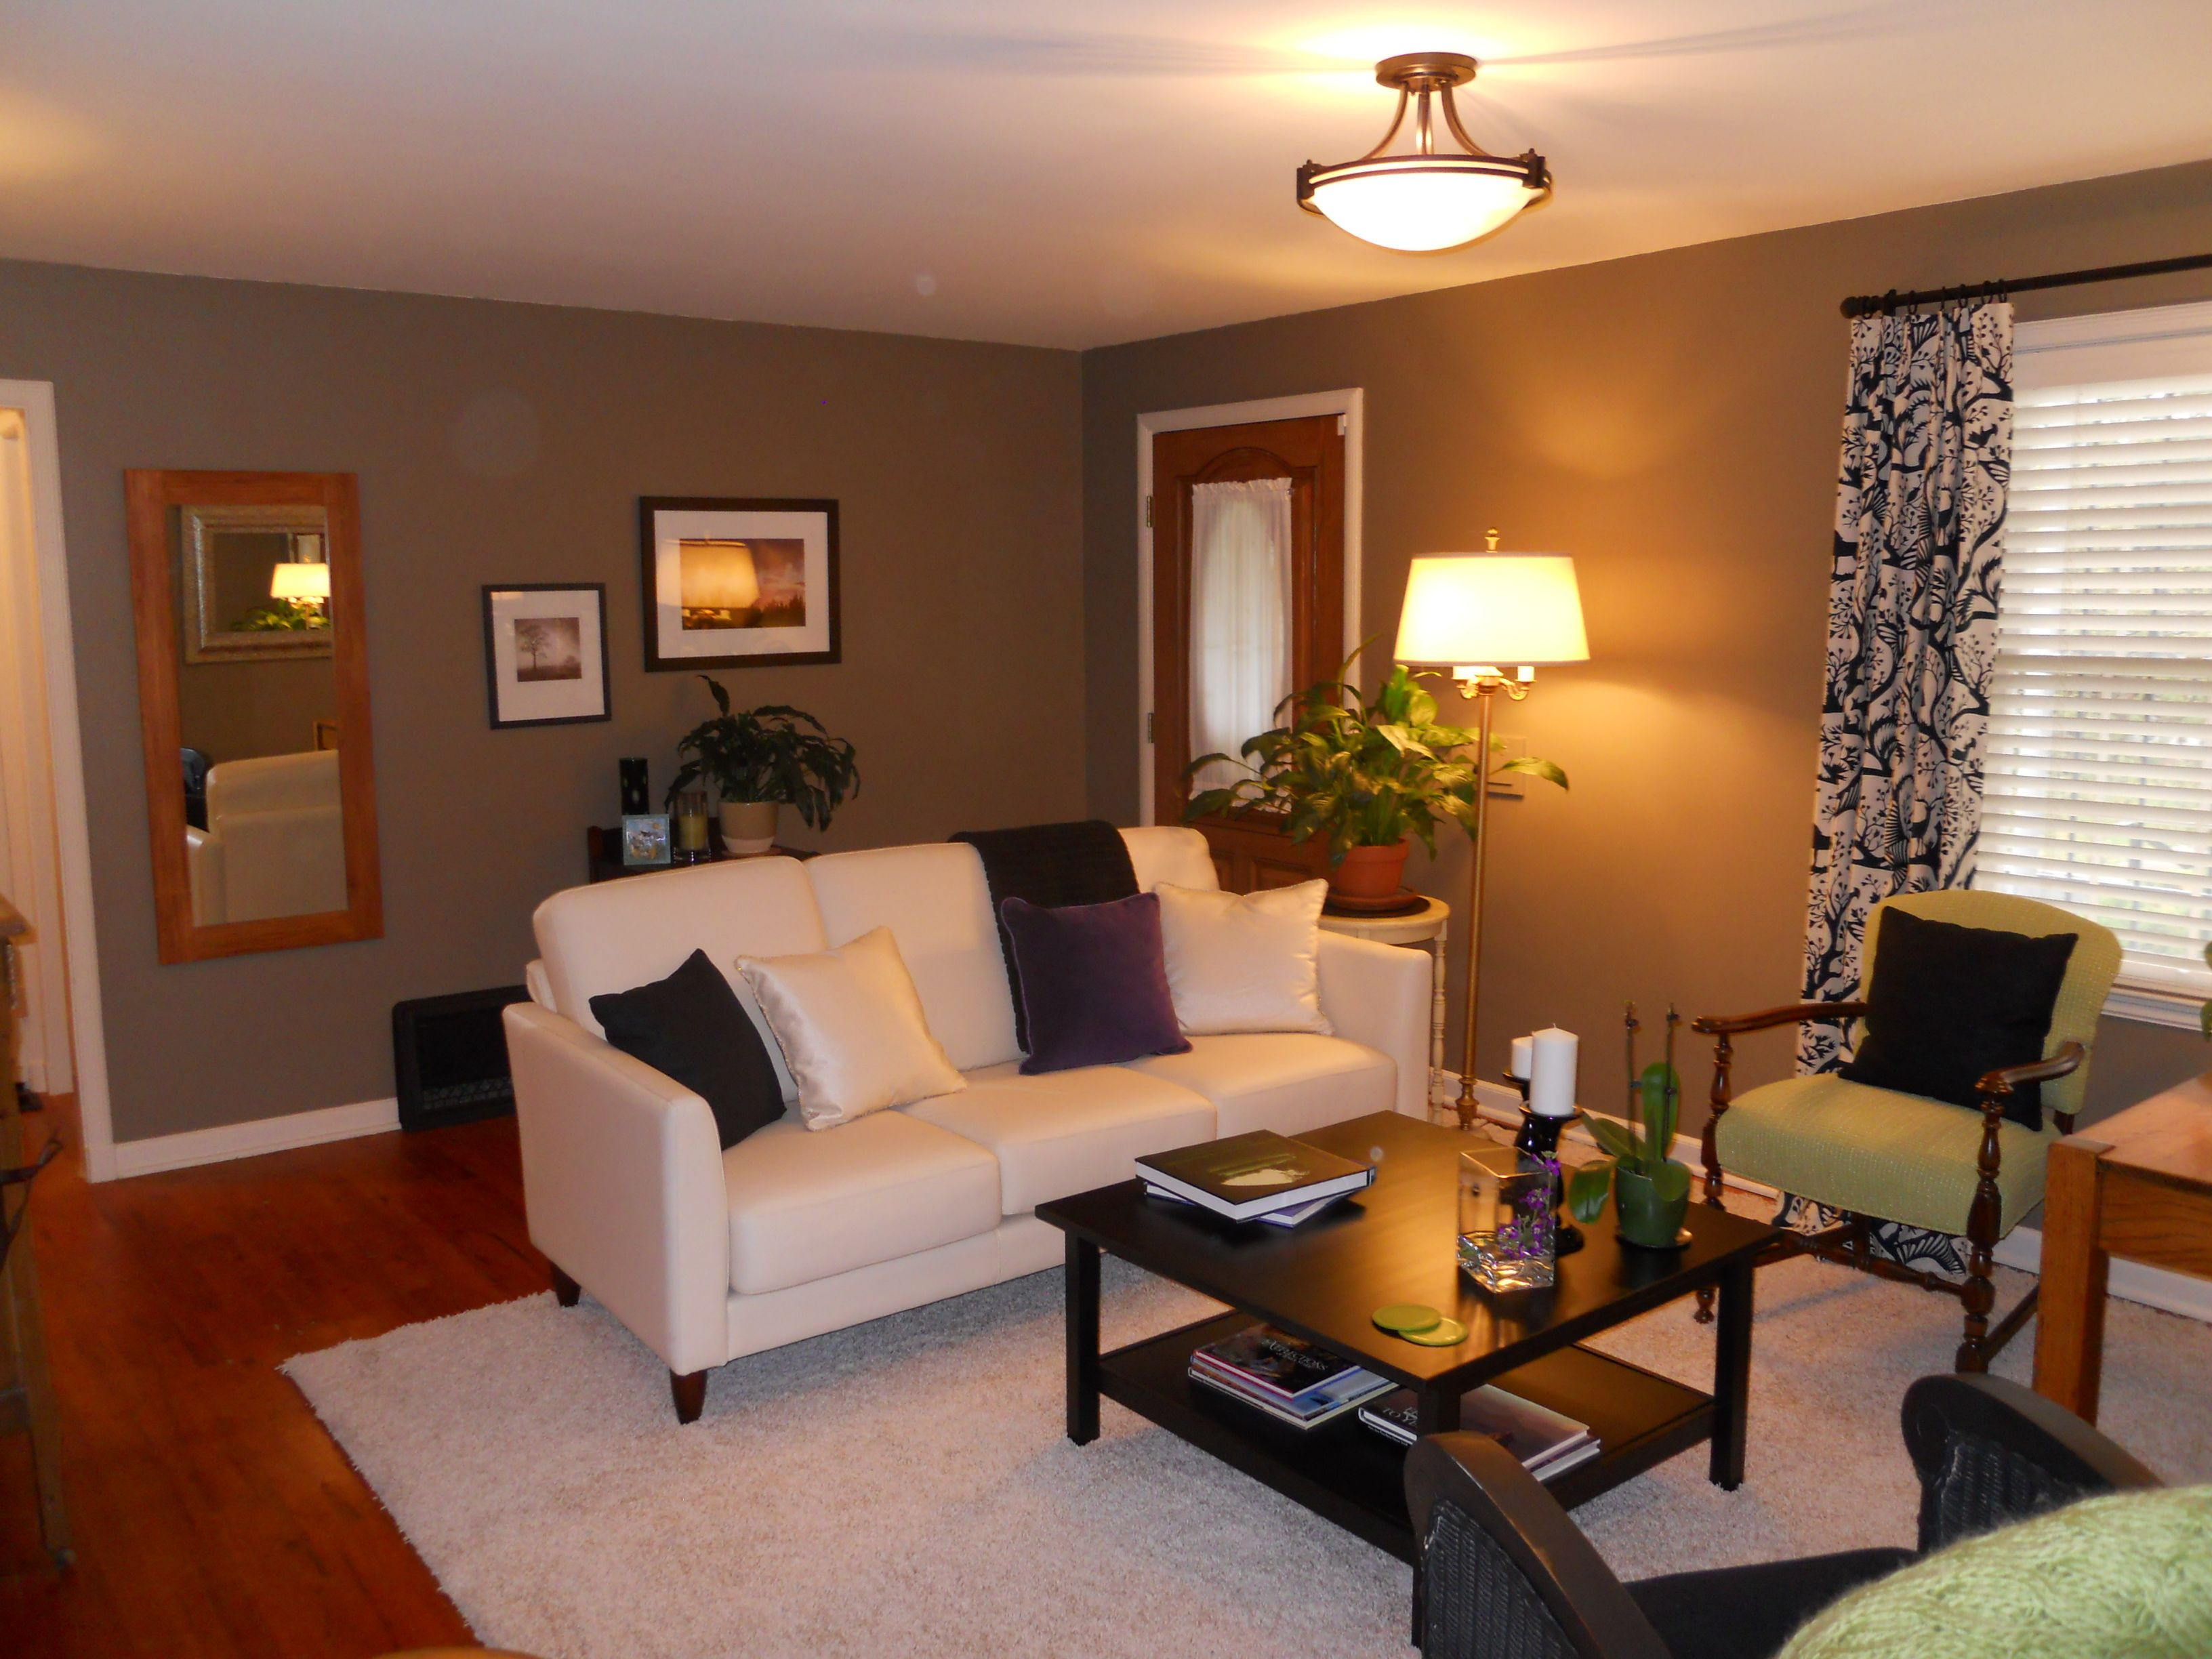 Living Roomlove This Spacetan With Blackwhite Curtains Mesmerizing Tan Living Room Collection Design Ideas